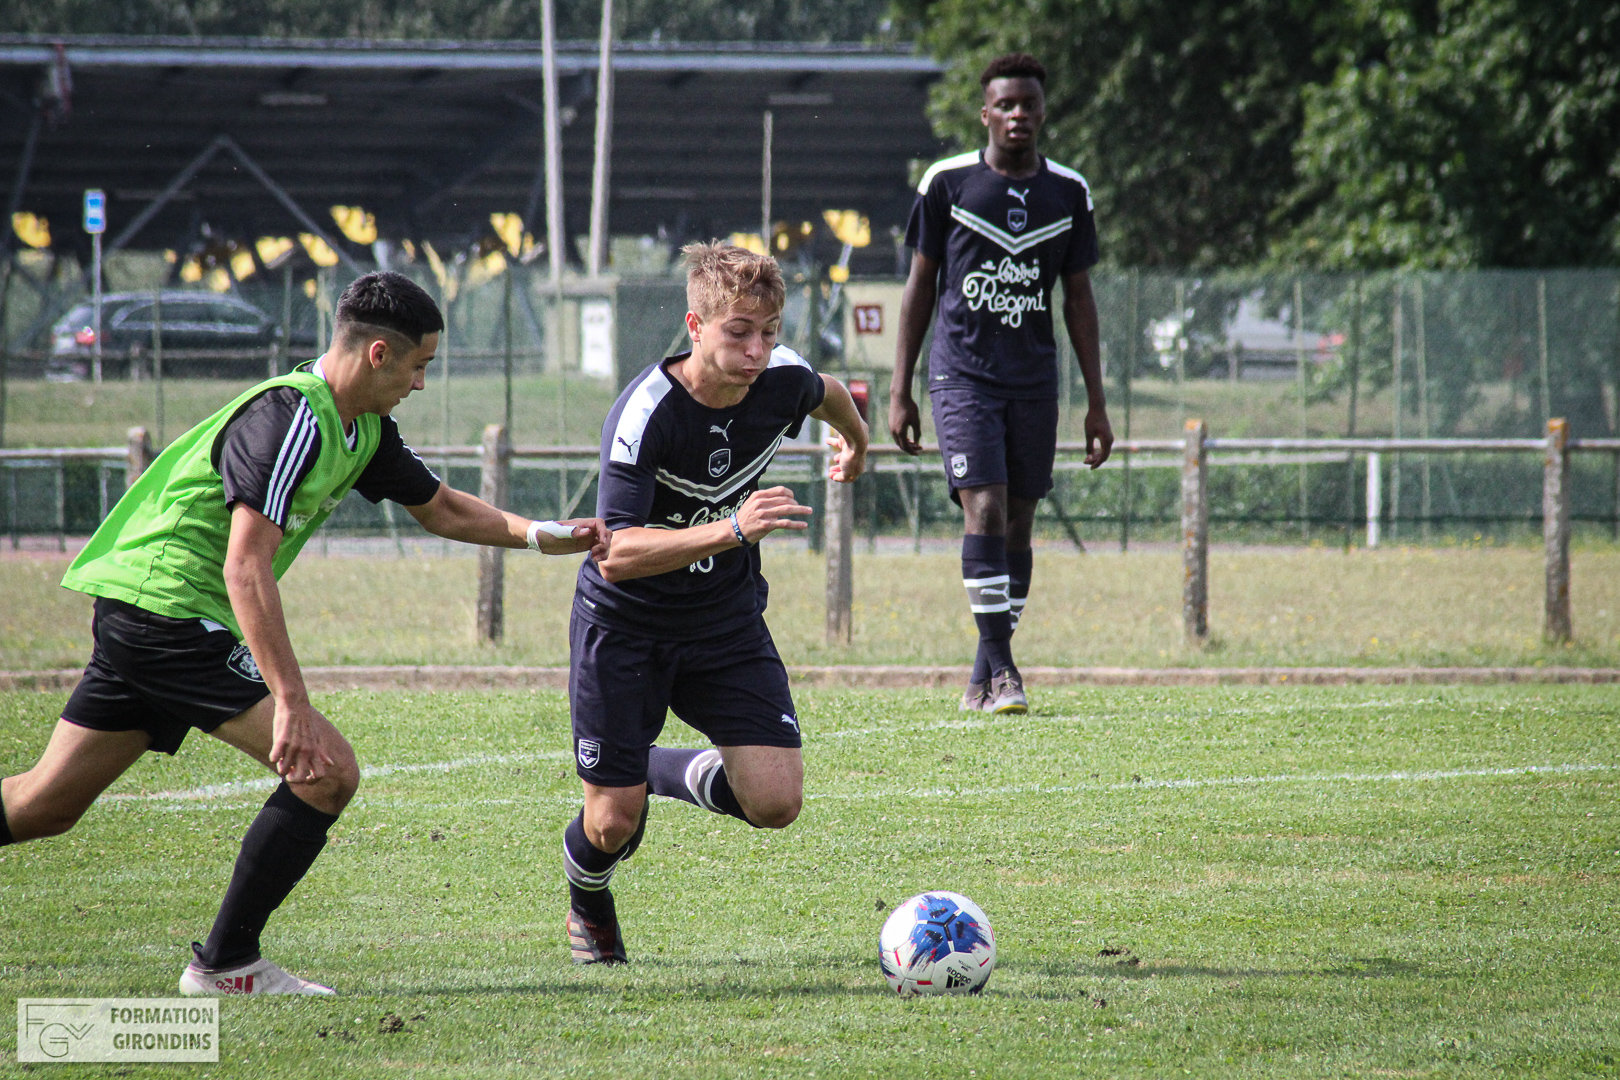 Cfa Girondins : Double confrontation amicale contre Toulouse - Formation Girondins